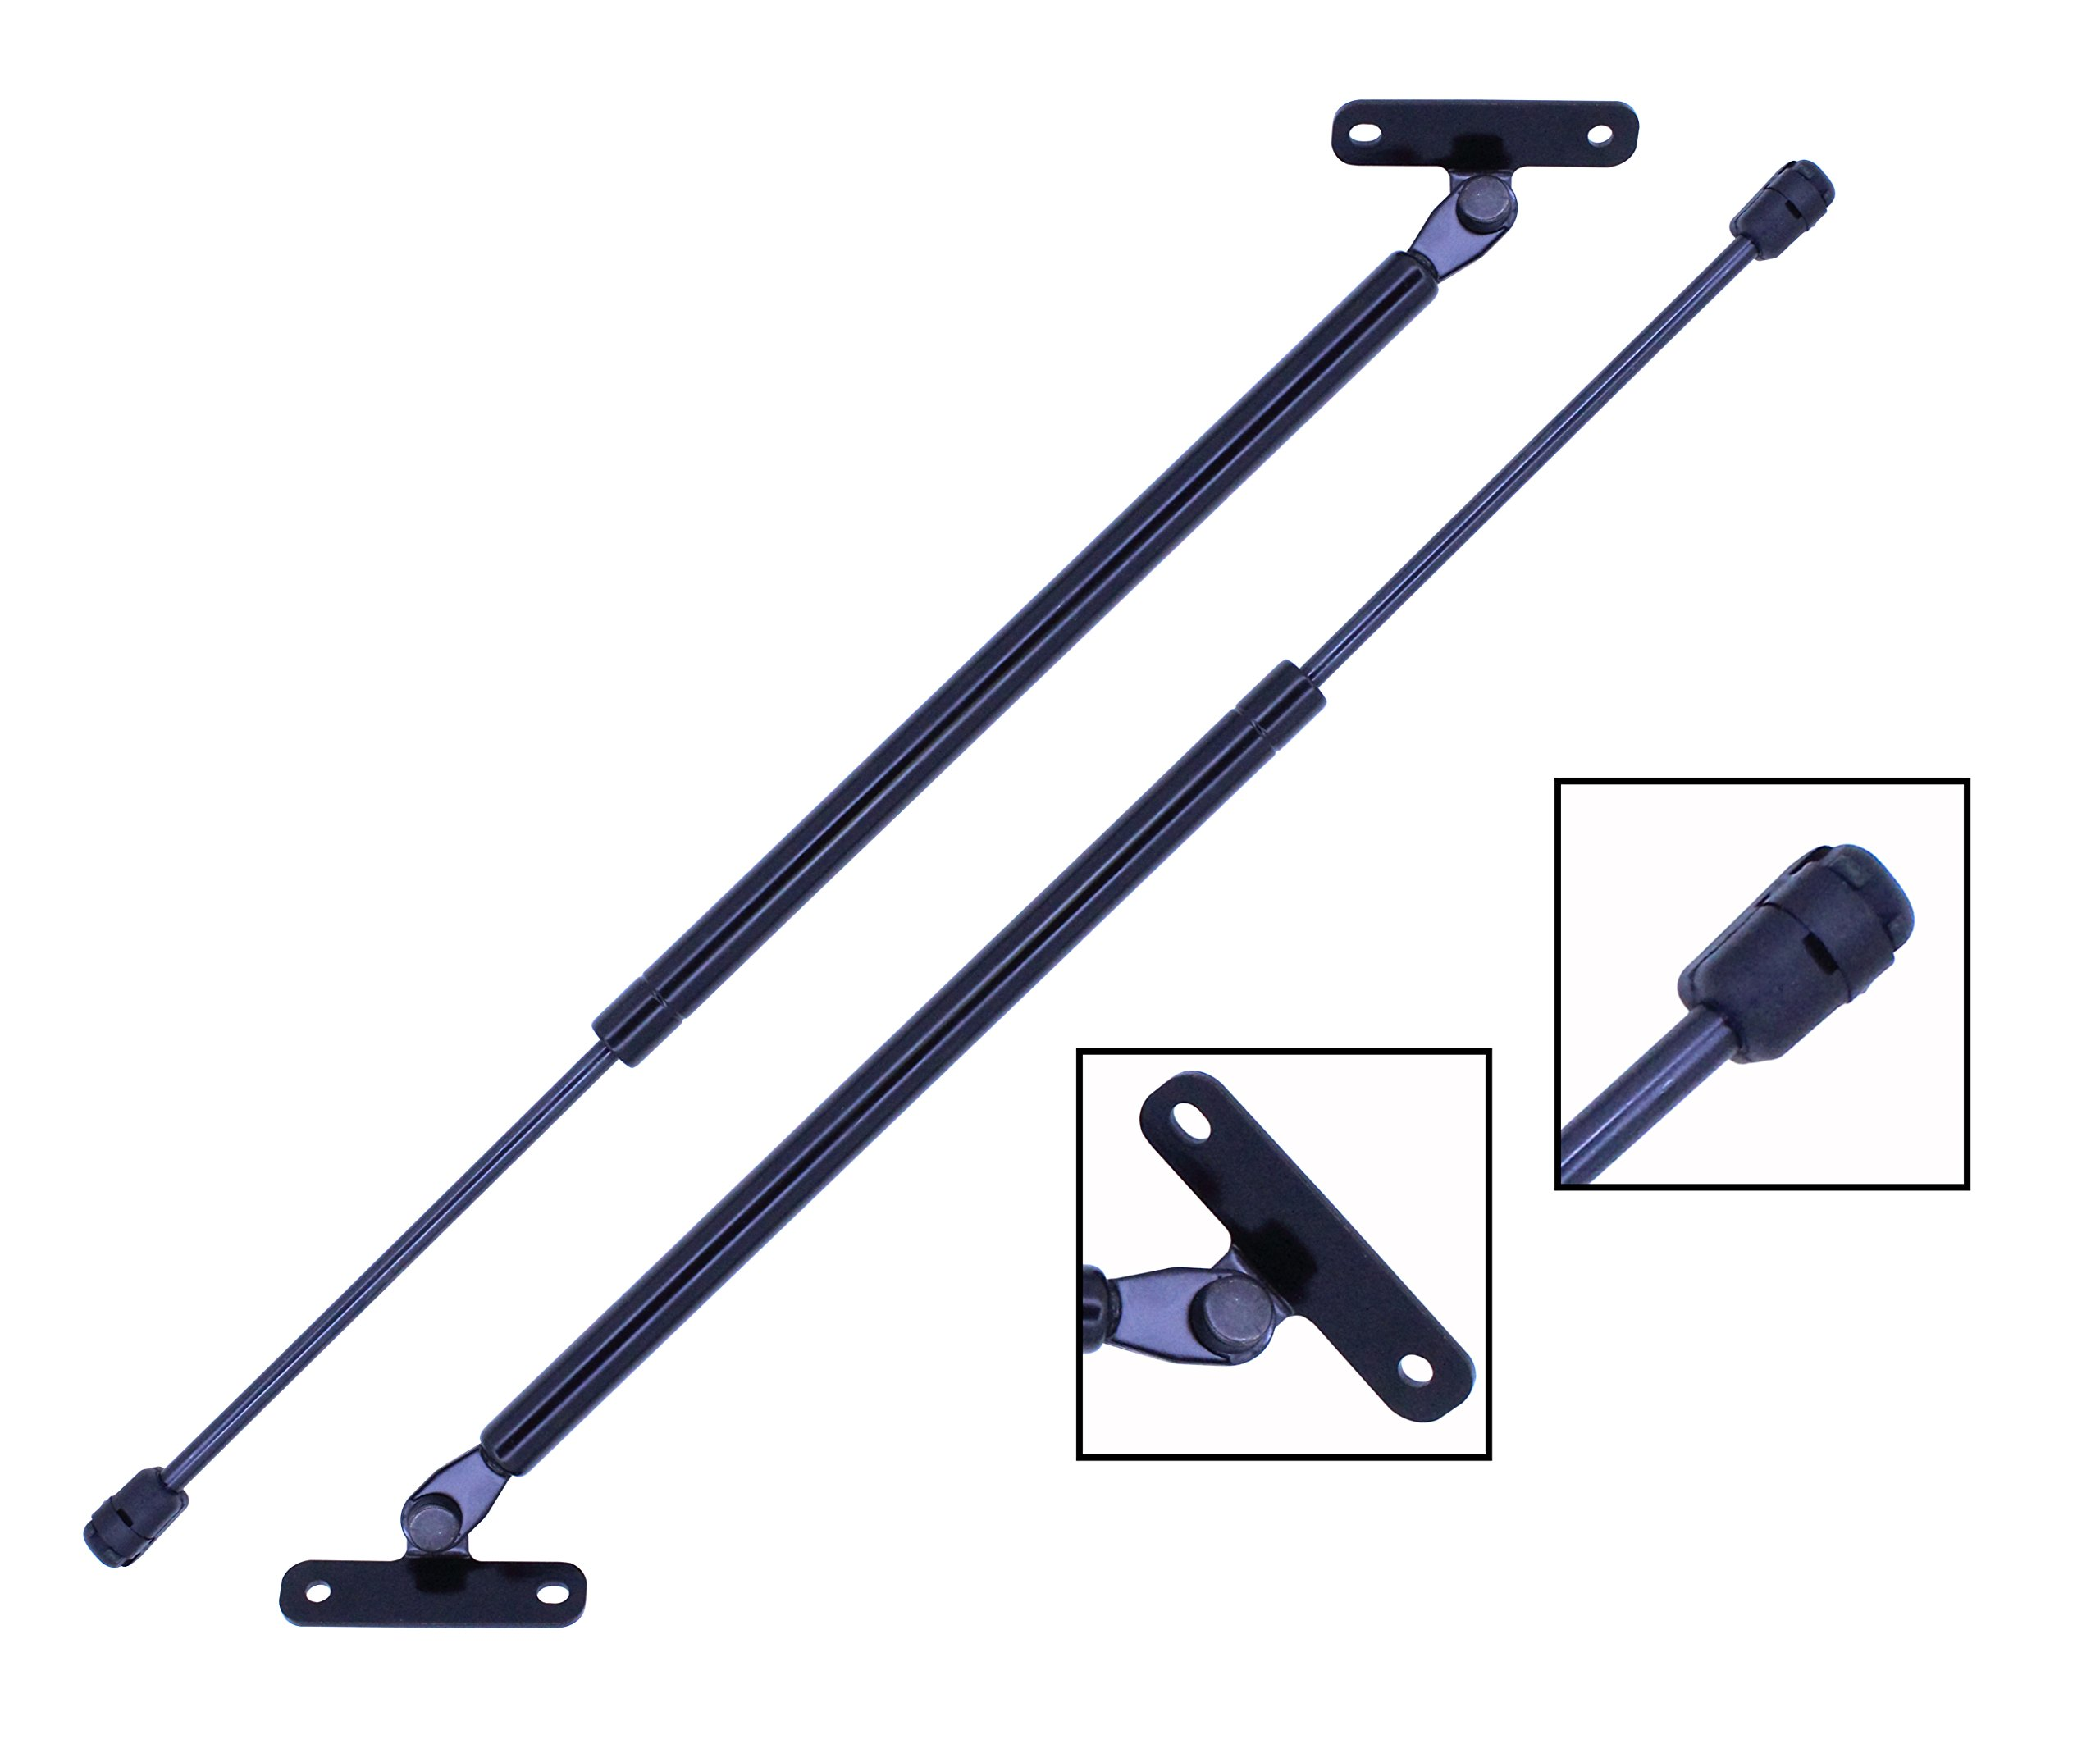 2 Pieces (SET) Tuff Support Liftgate Lift Supports 1996 To 2004 Nissan Pathfinder & R50 / 1997 To 2003 Infiniti QX4